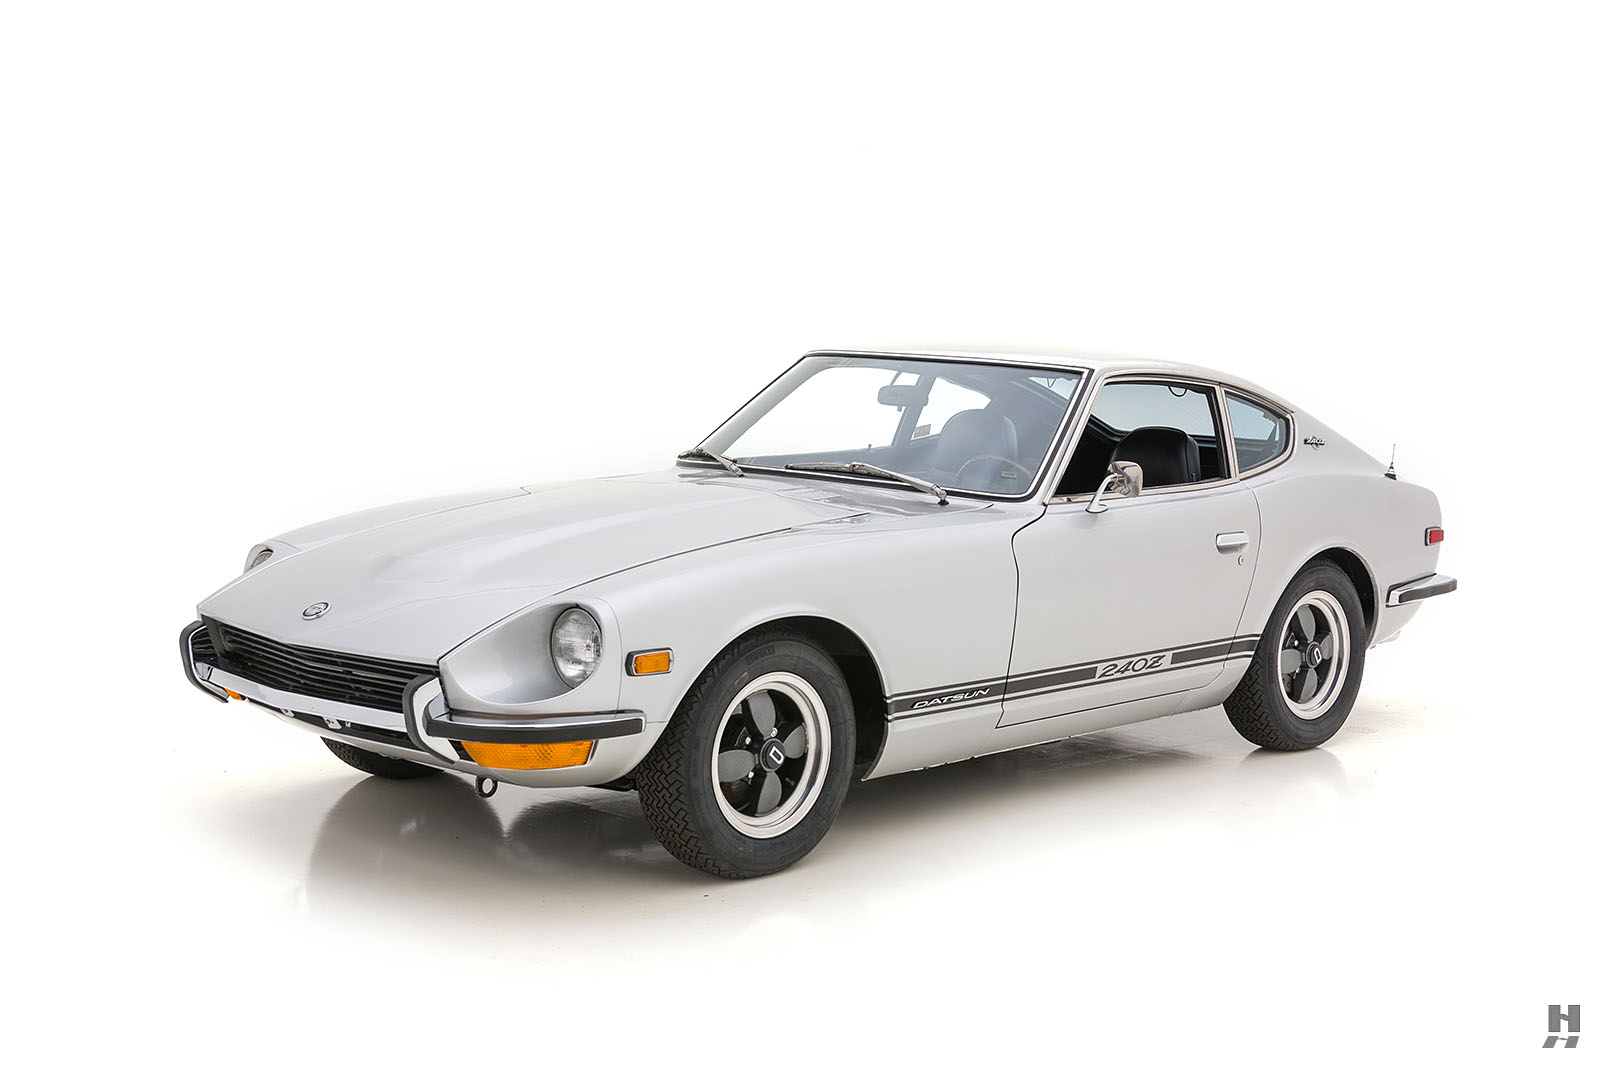 1970 Datsun 240Z For Sale at Hyman LTD